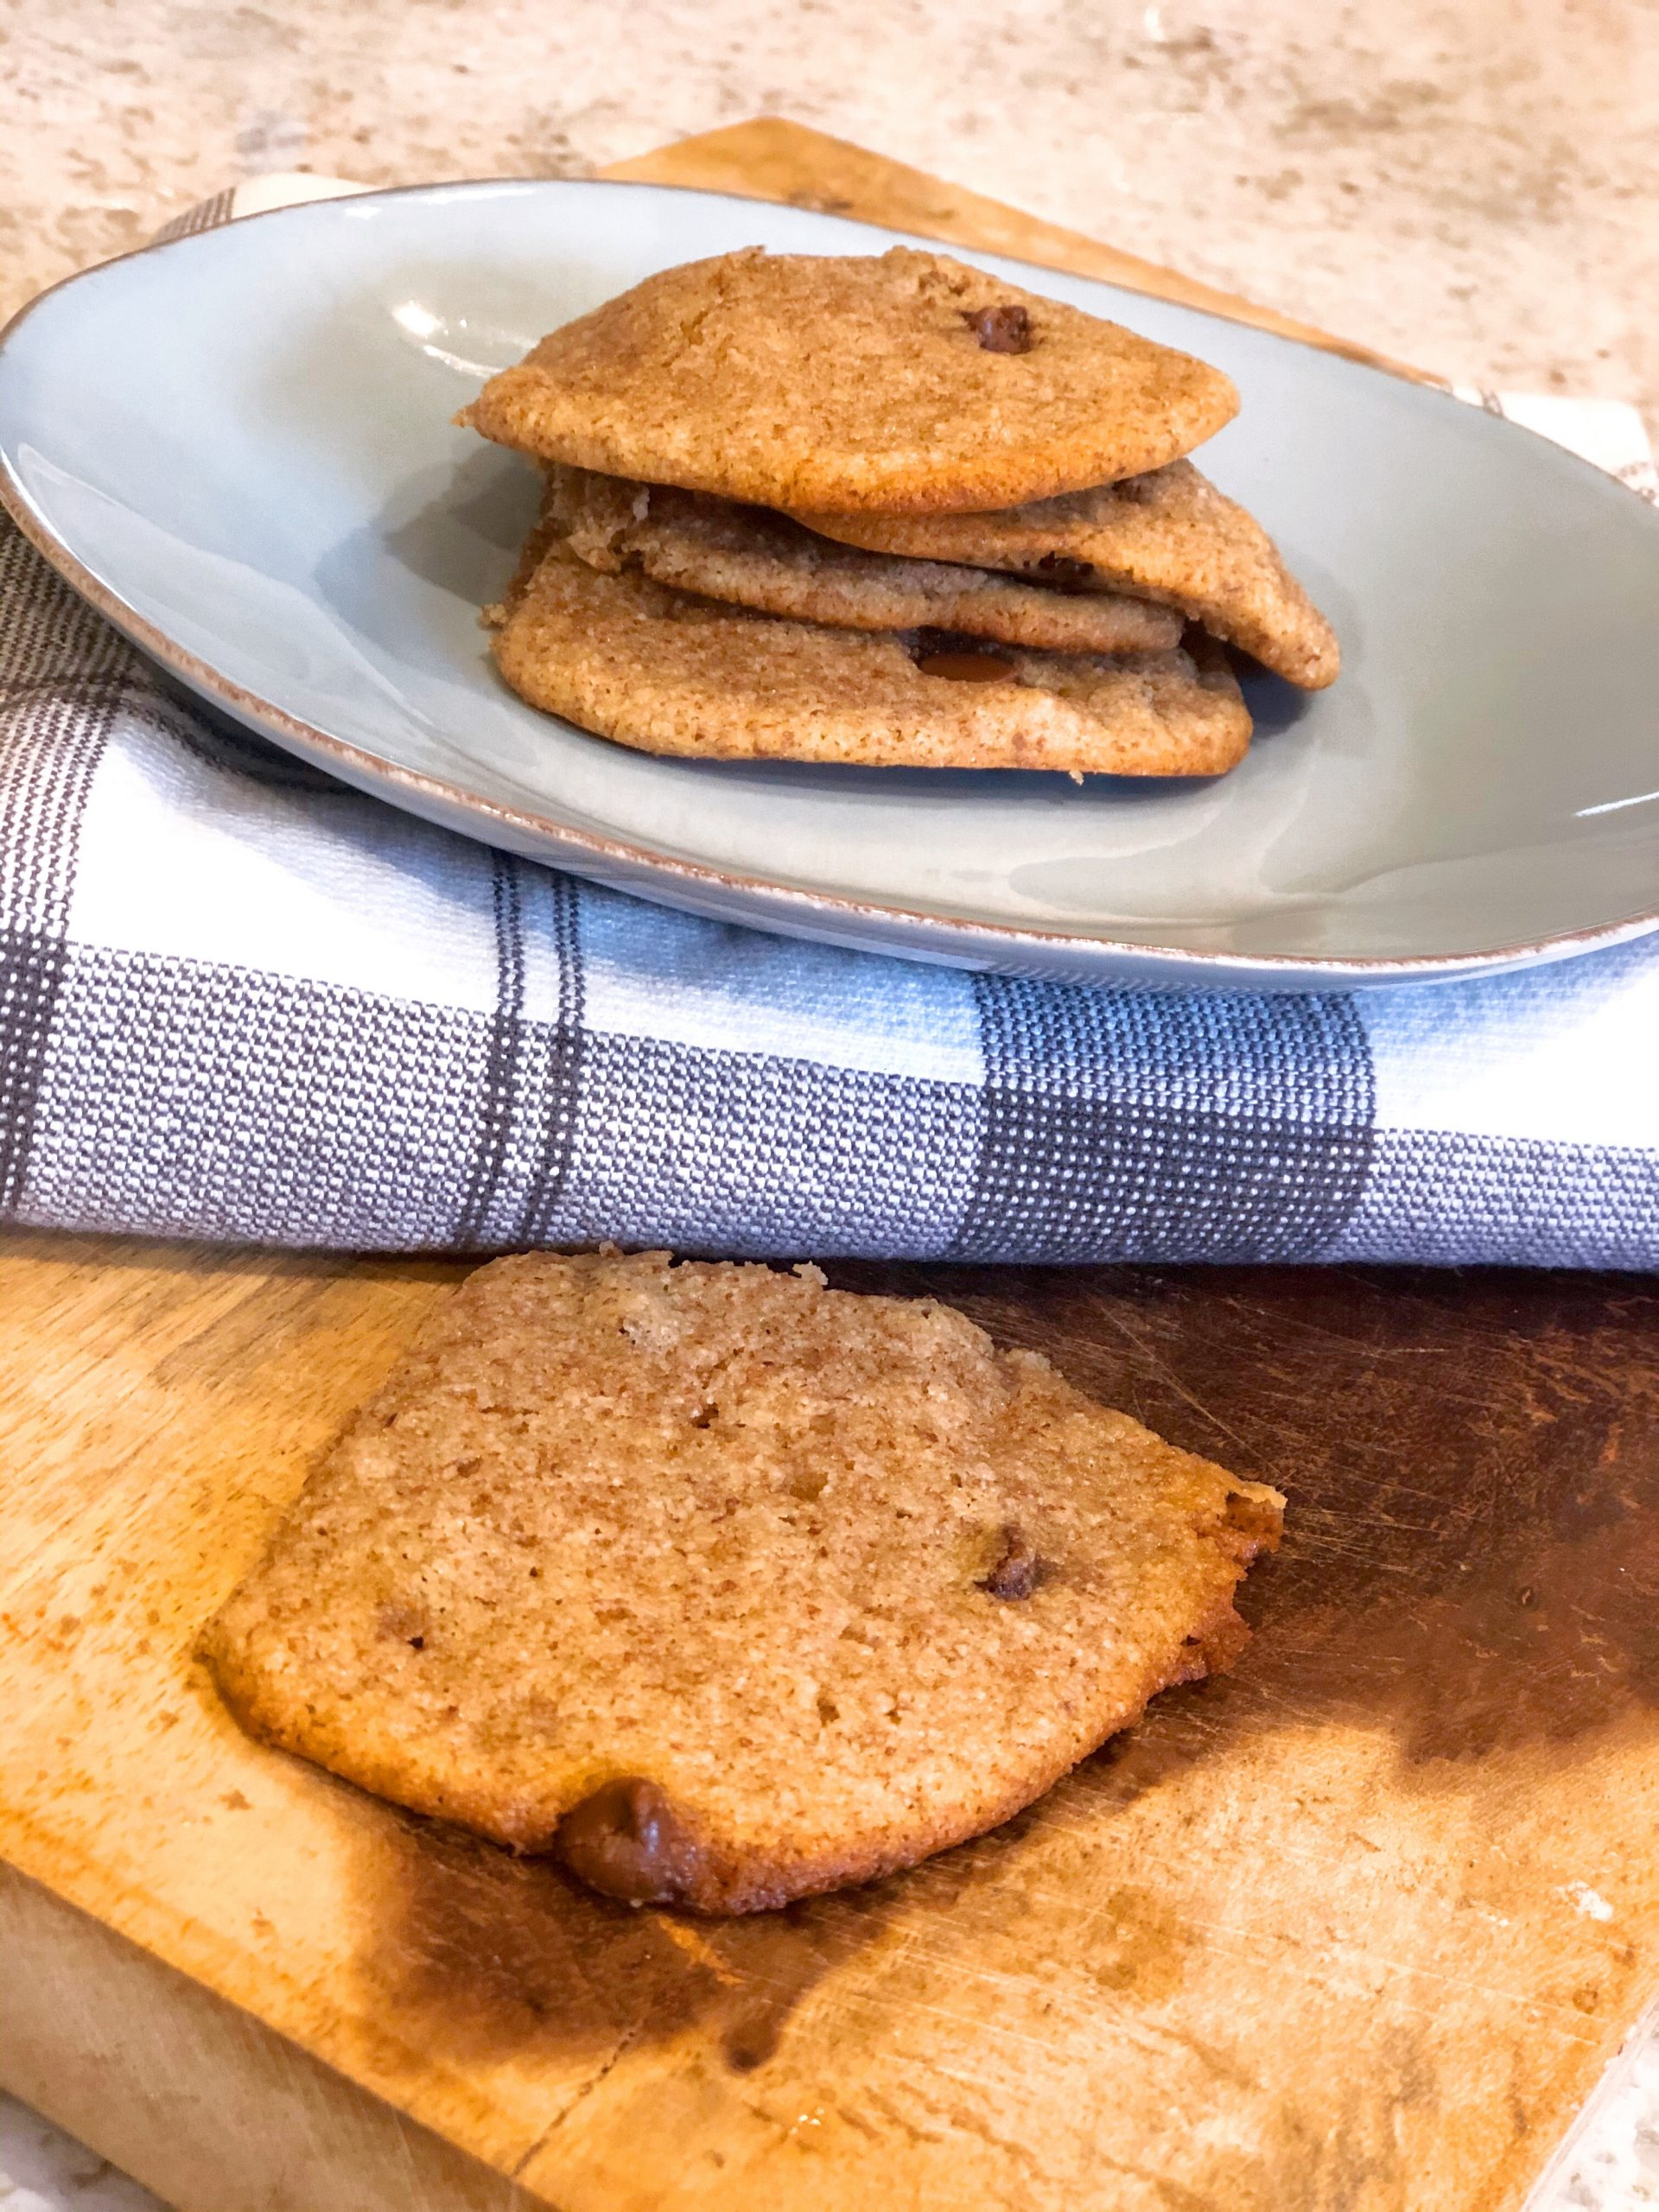 almond cookies on a blue plate sitting on a white cloth on a wooden board